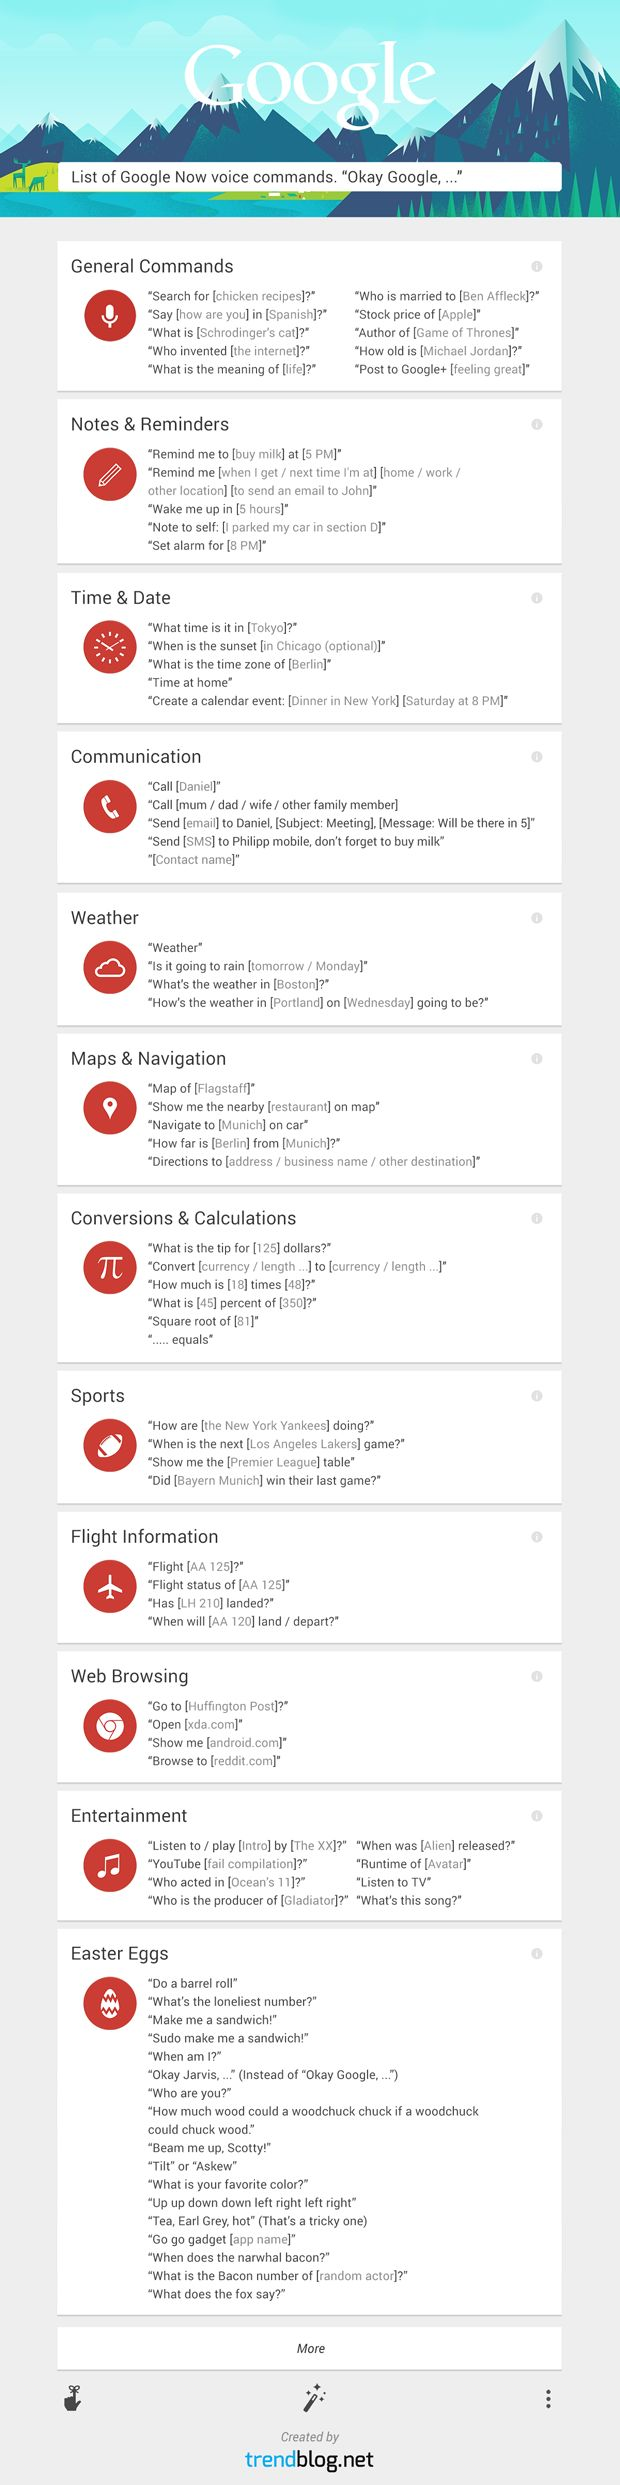 Graphic with a list of Google Now voice commands